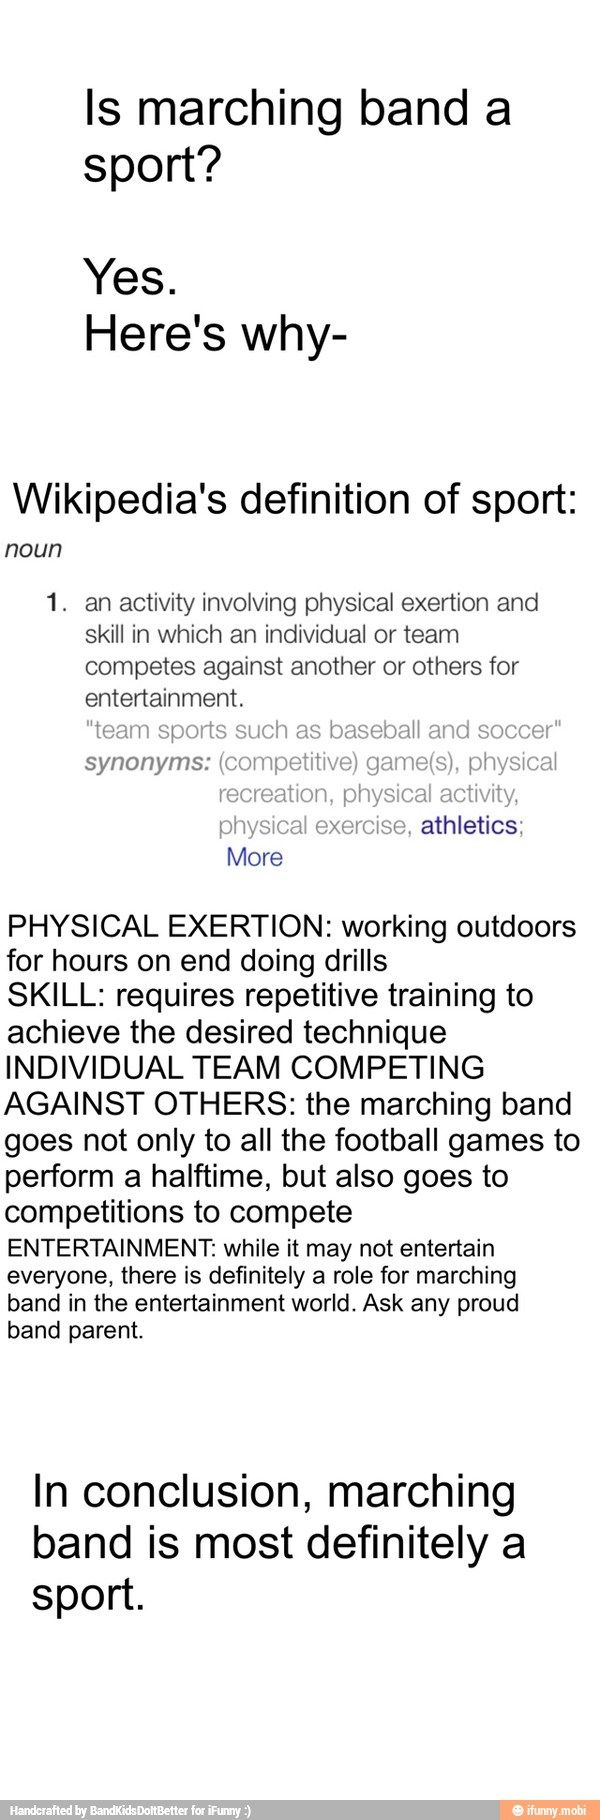 This is for all the people out there in the world who think marching band is not a sport